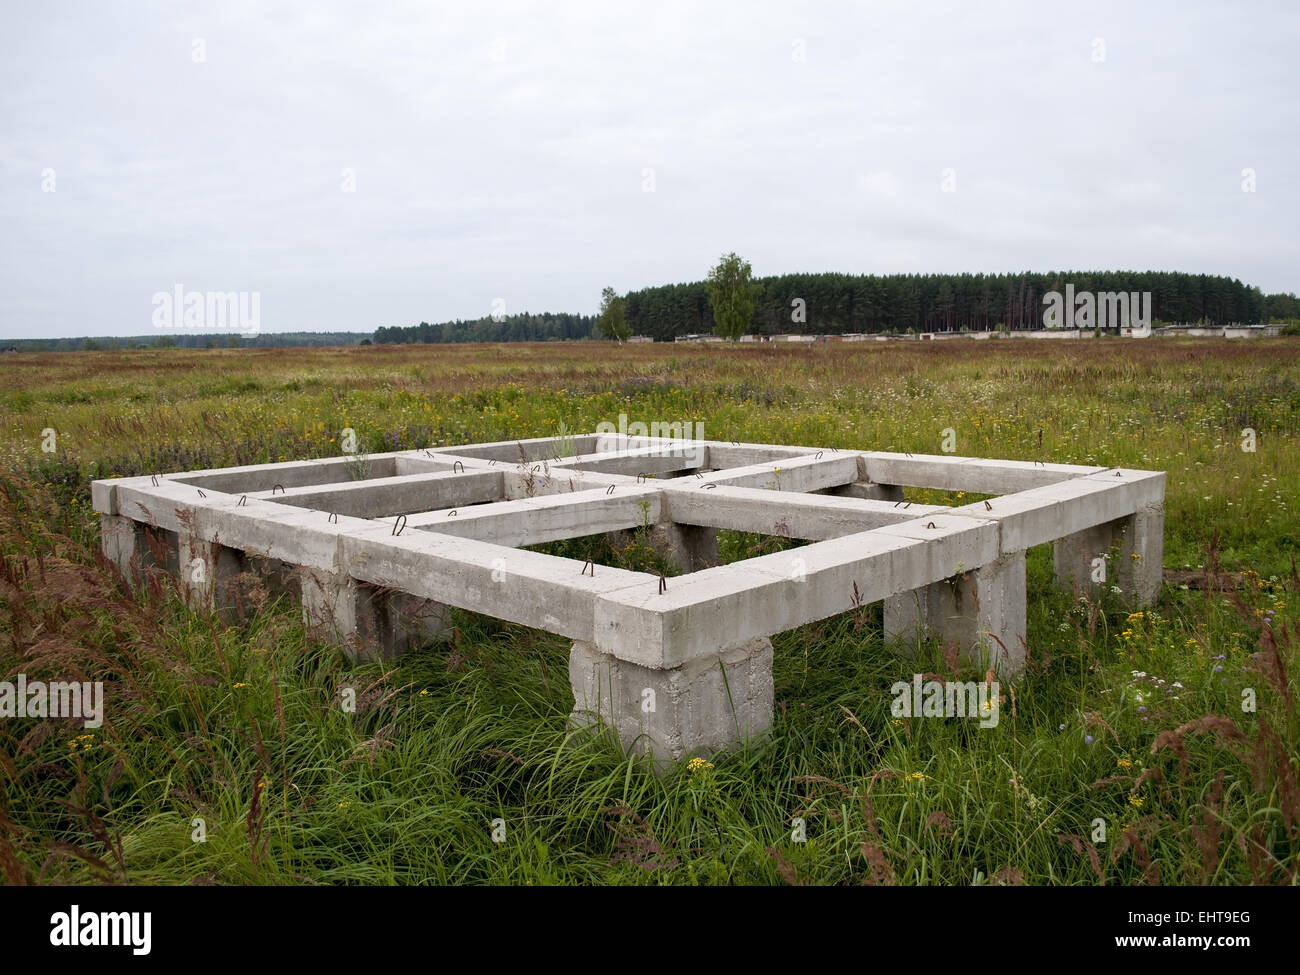 Pier Foundation For Small Country House Stock Photo Alamy